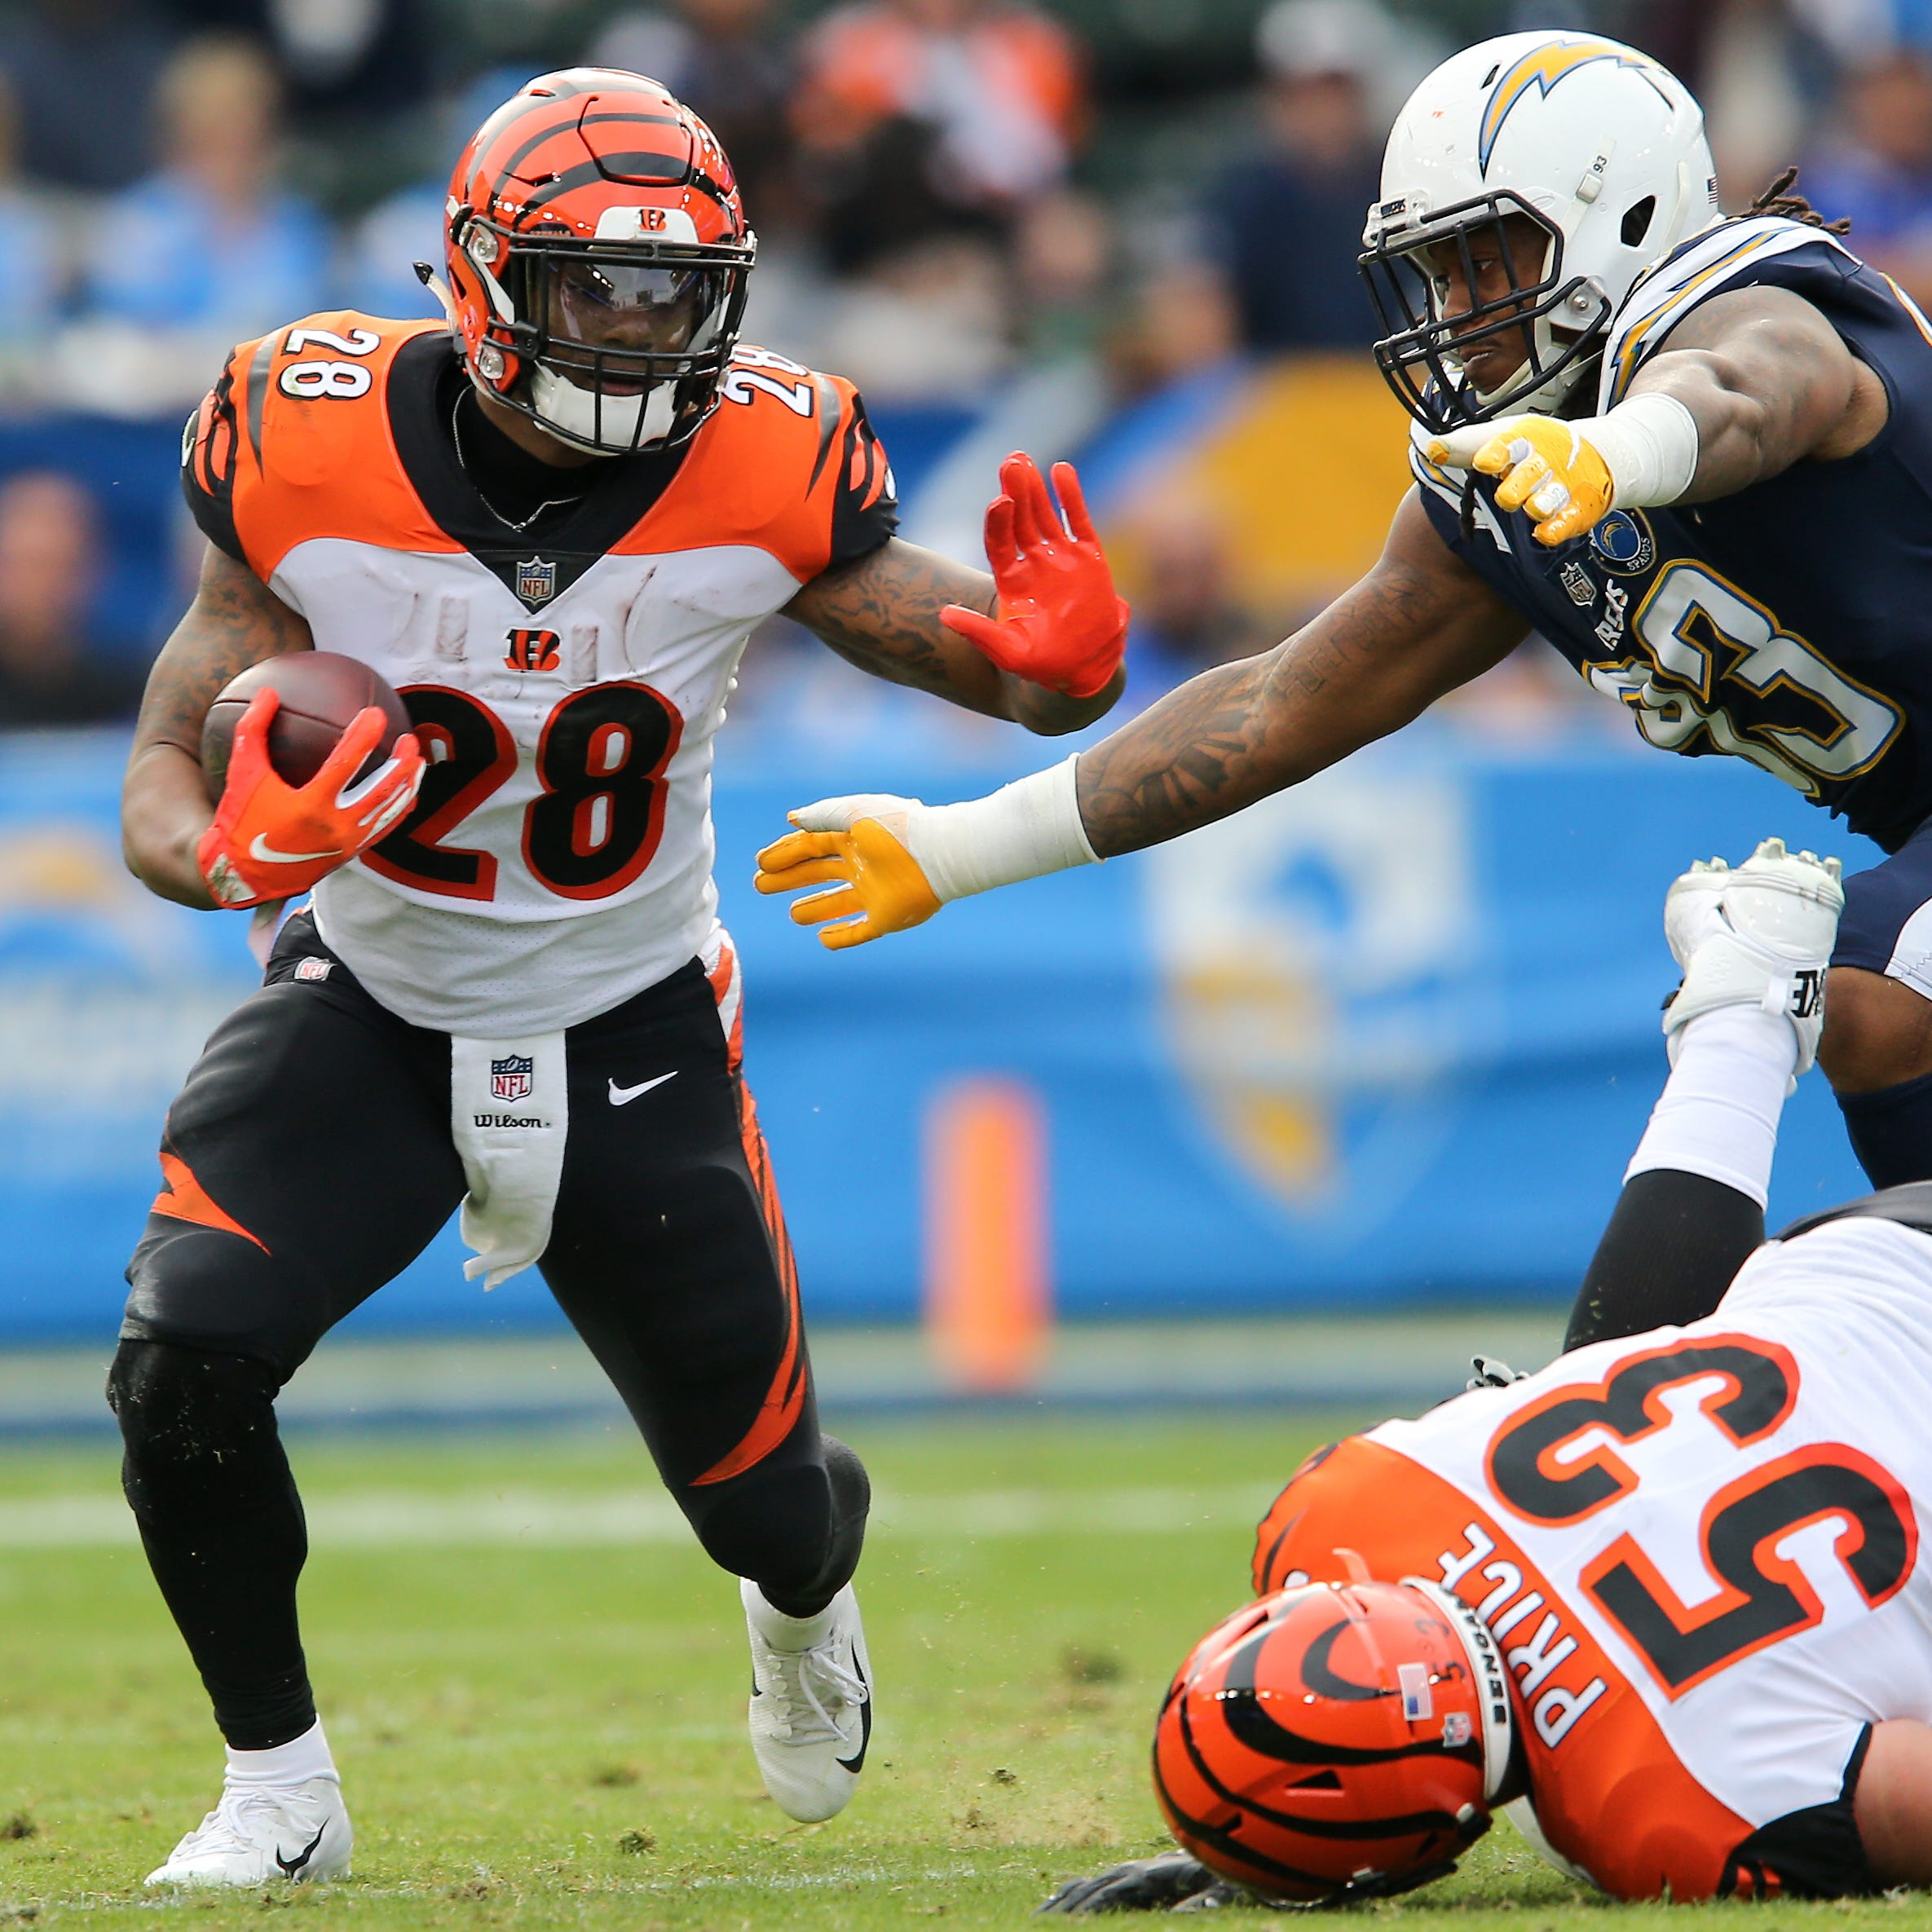 Final: Los Angeles Chargers 26, Cincinnati Bengals 21